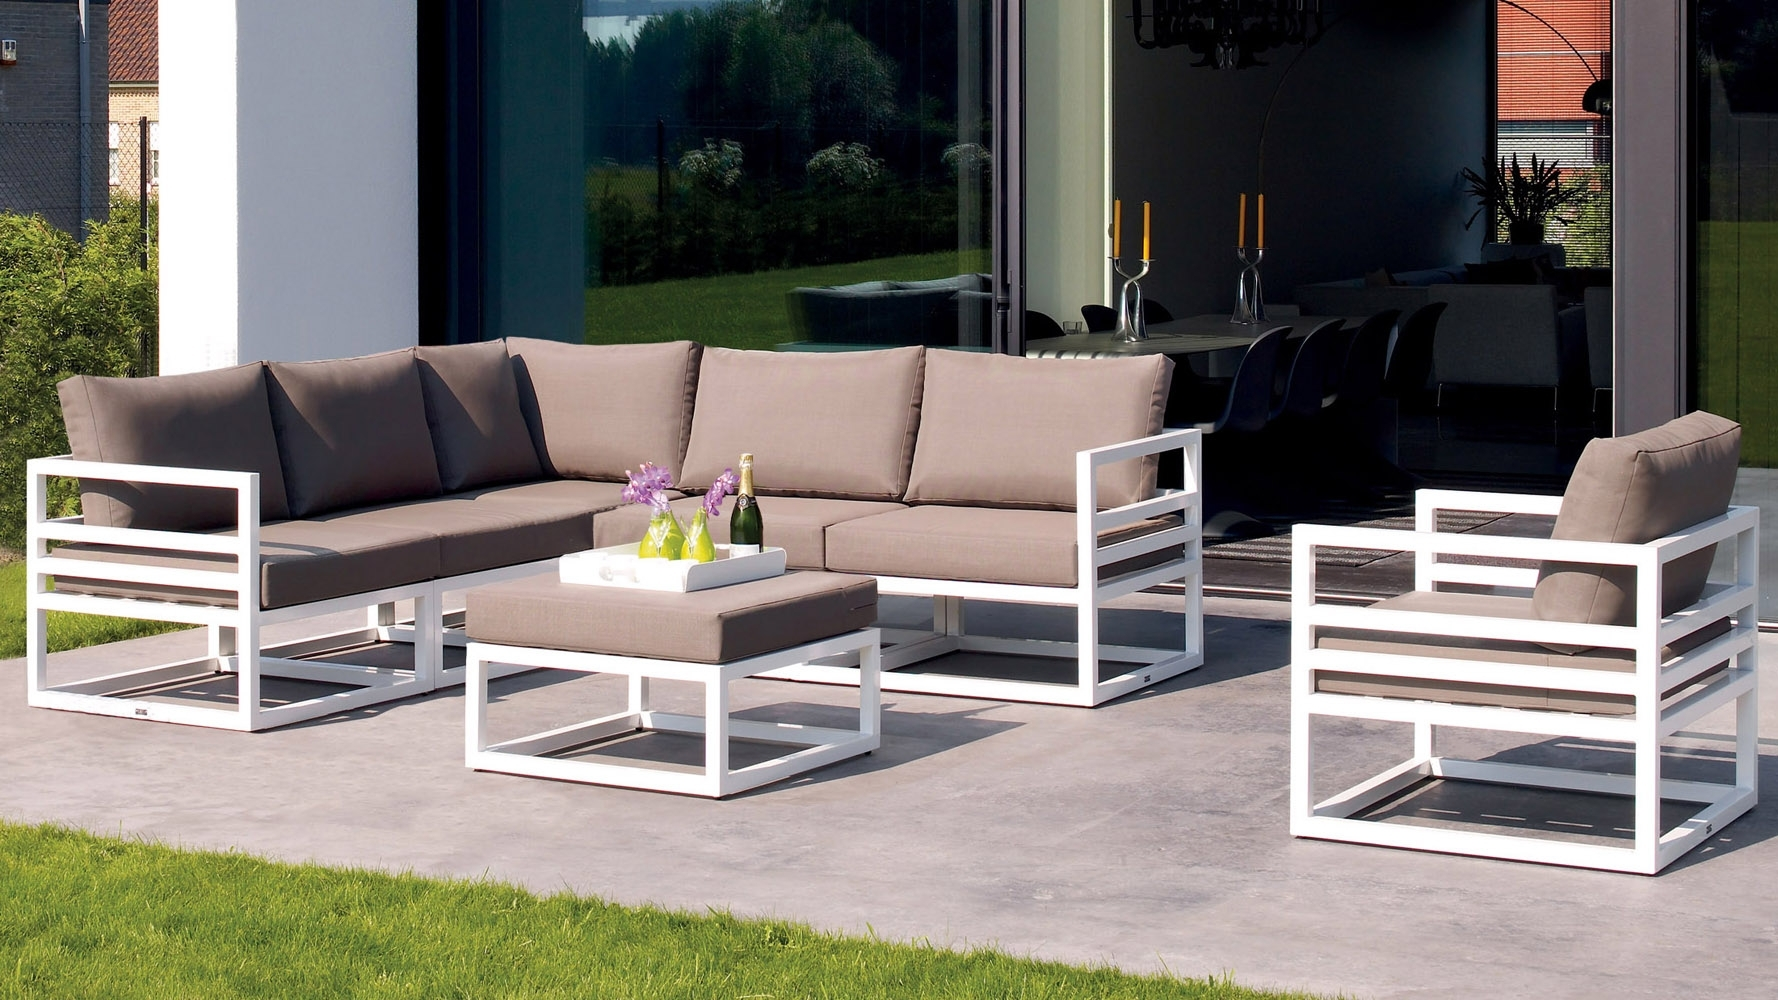 Patio White Aluminum Patio Furniture Pythonet Home Furniture Pertaining To Modern Outdoor Lounge Furniture Best Modern Outdoor Lounge Furniture